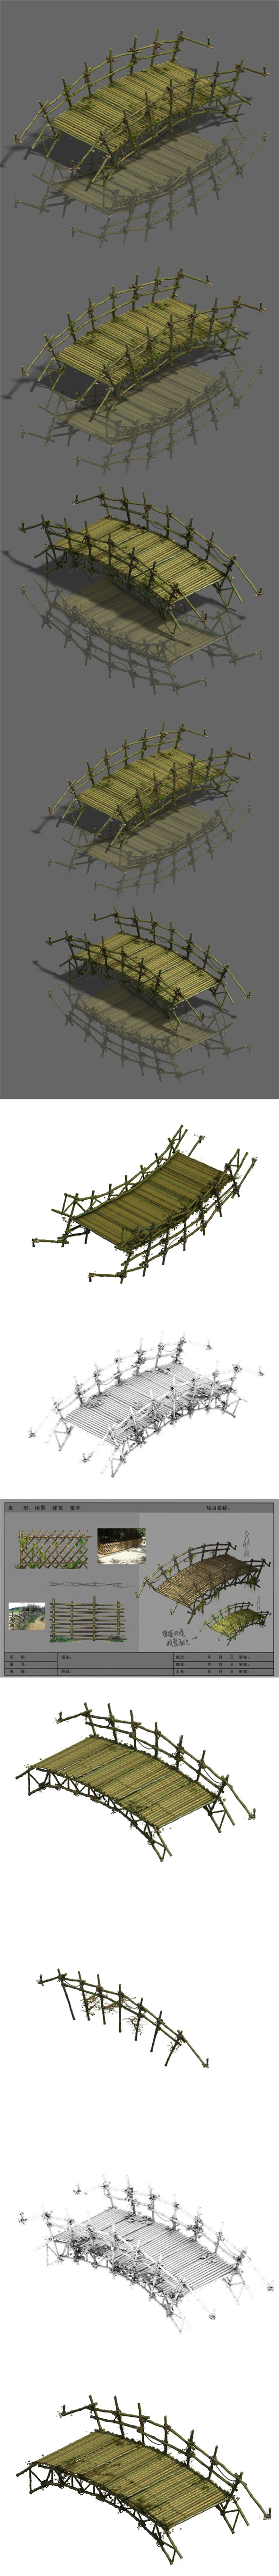 Forest objects - bamboo bridge - 3DOcean Item for Sale